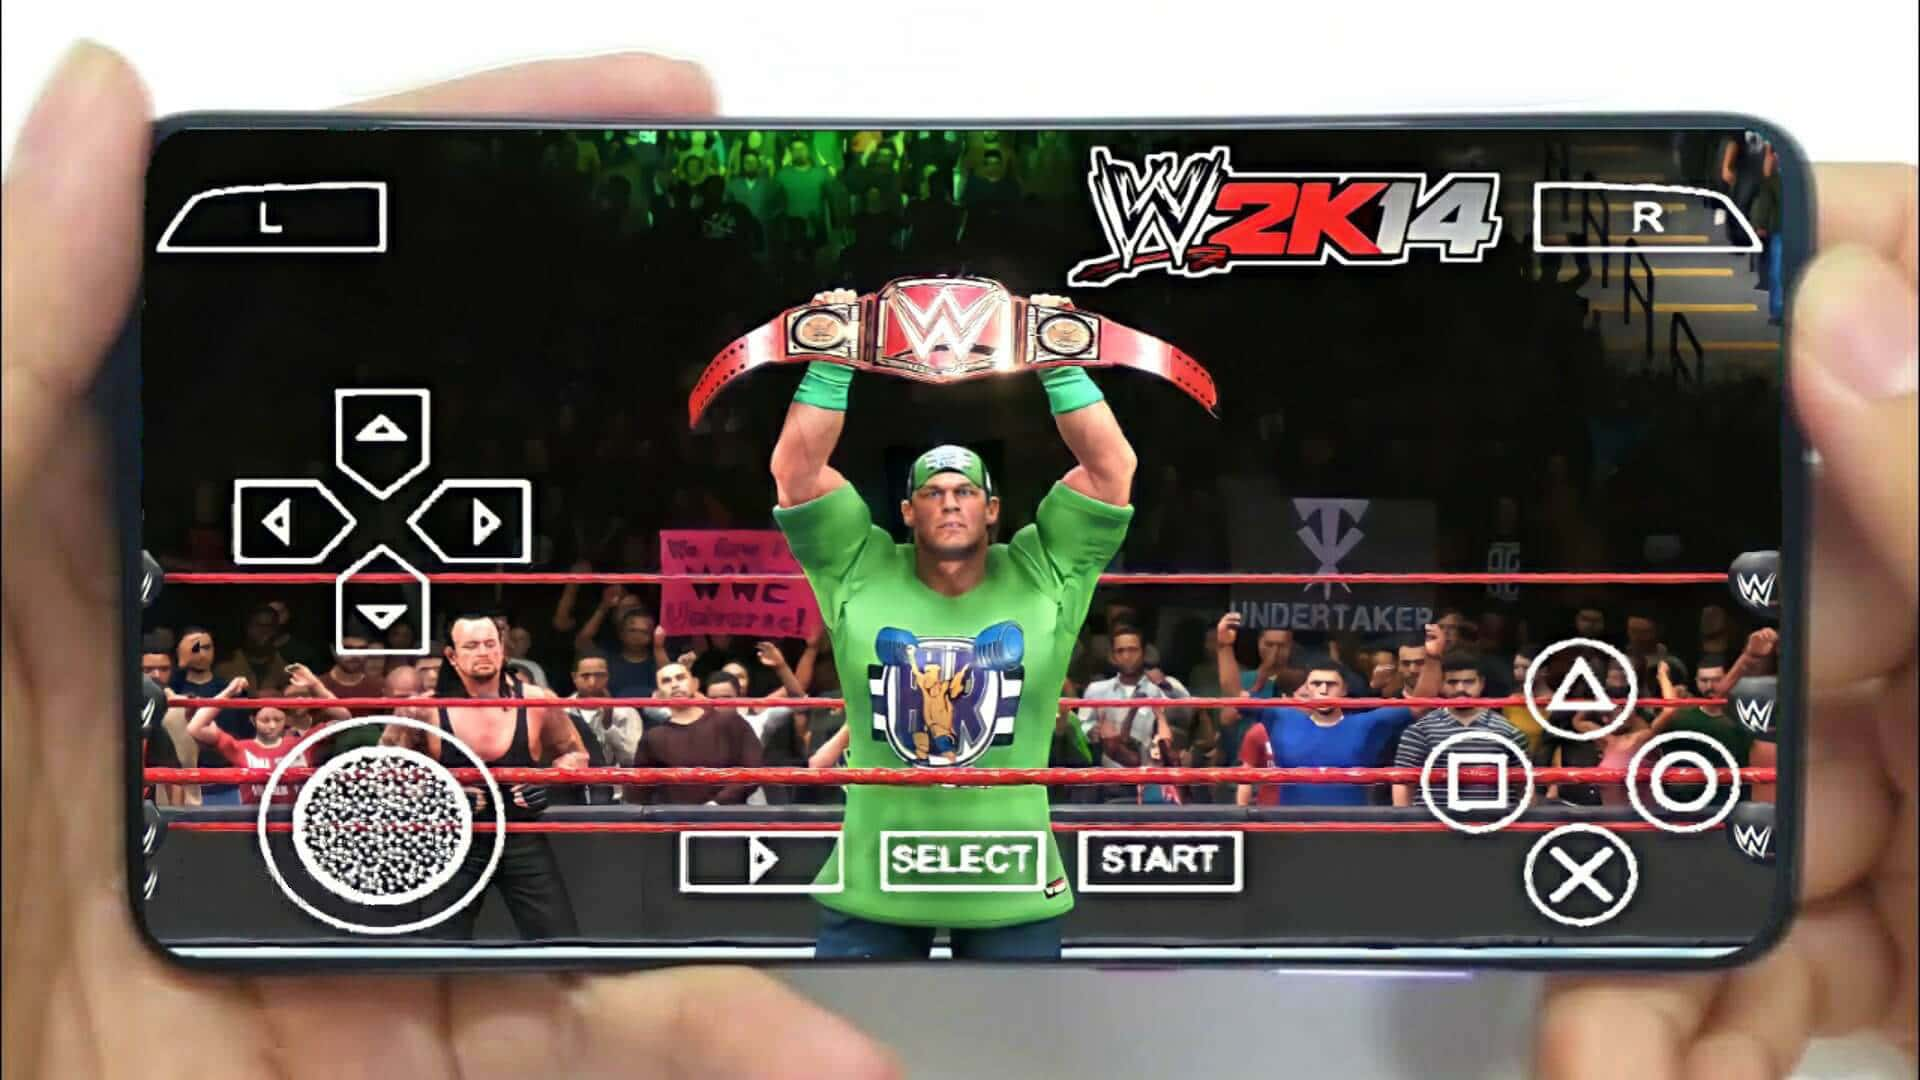 WWE 2K14 PPSSPP Mod 2021 Download for Android